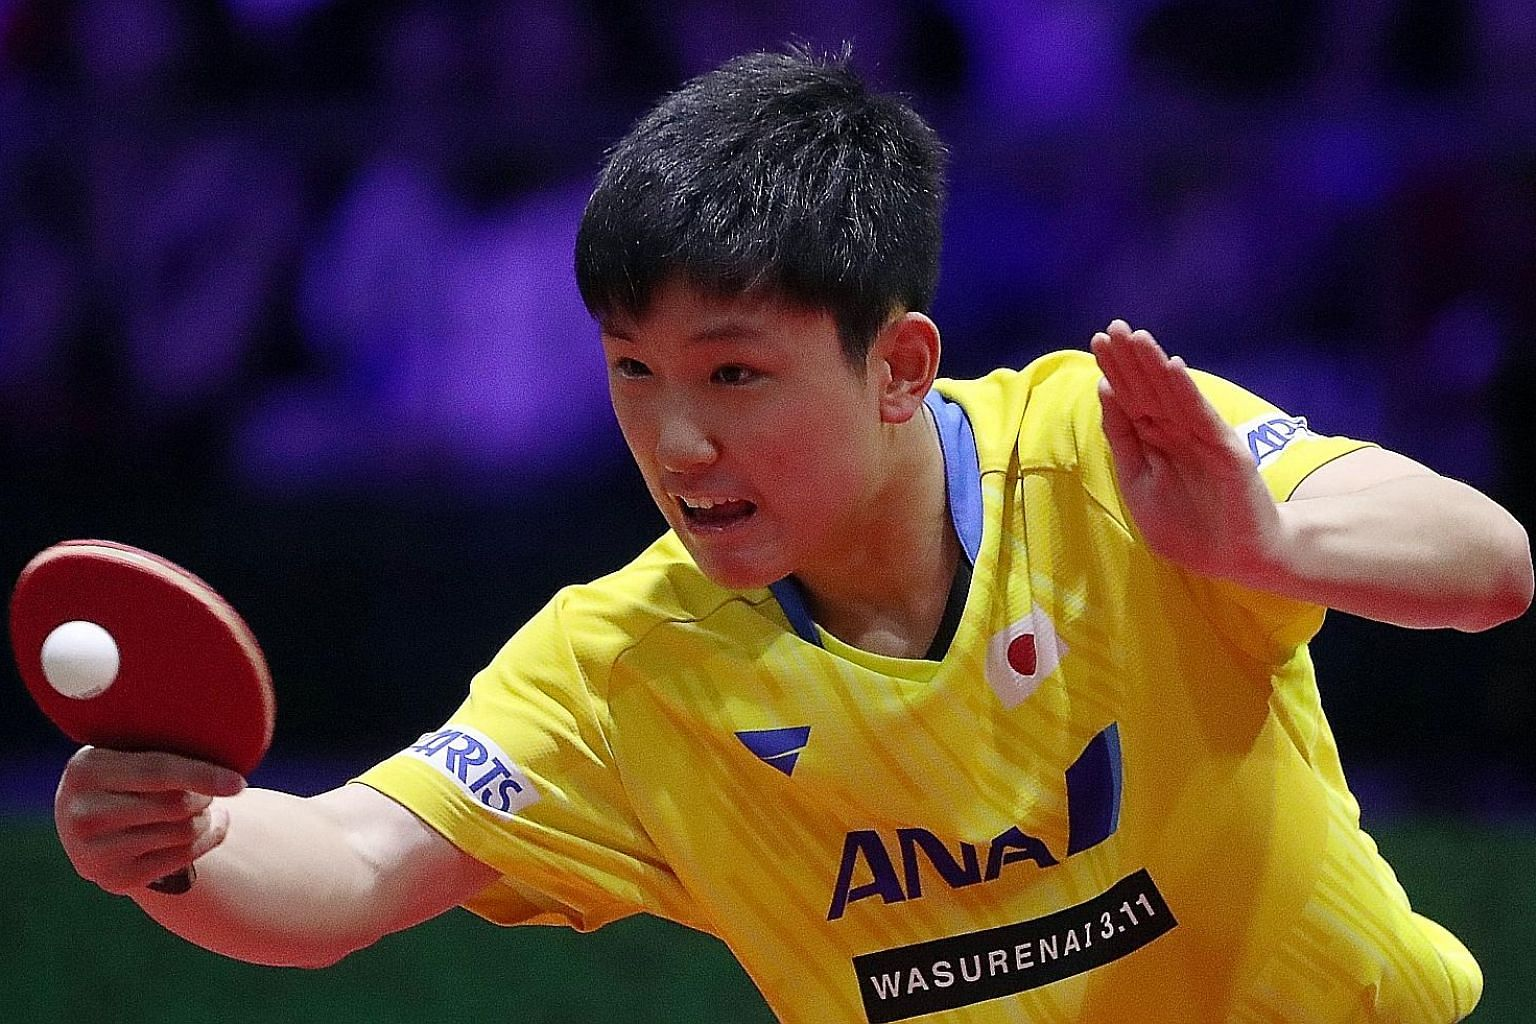 Japan's Tomokazu Harimoto, the world No. 4, is seen as one of the players capable of ending China's table tennis domination at the Tokyo Olympics. PHOTO: AGENCE FRANCE-PRESSE